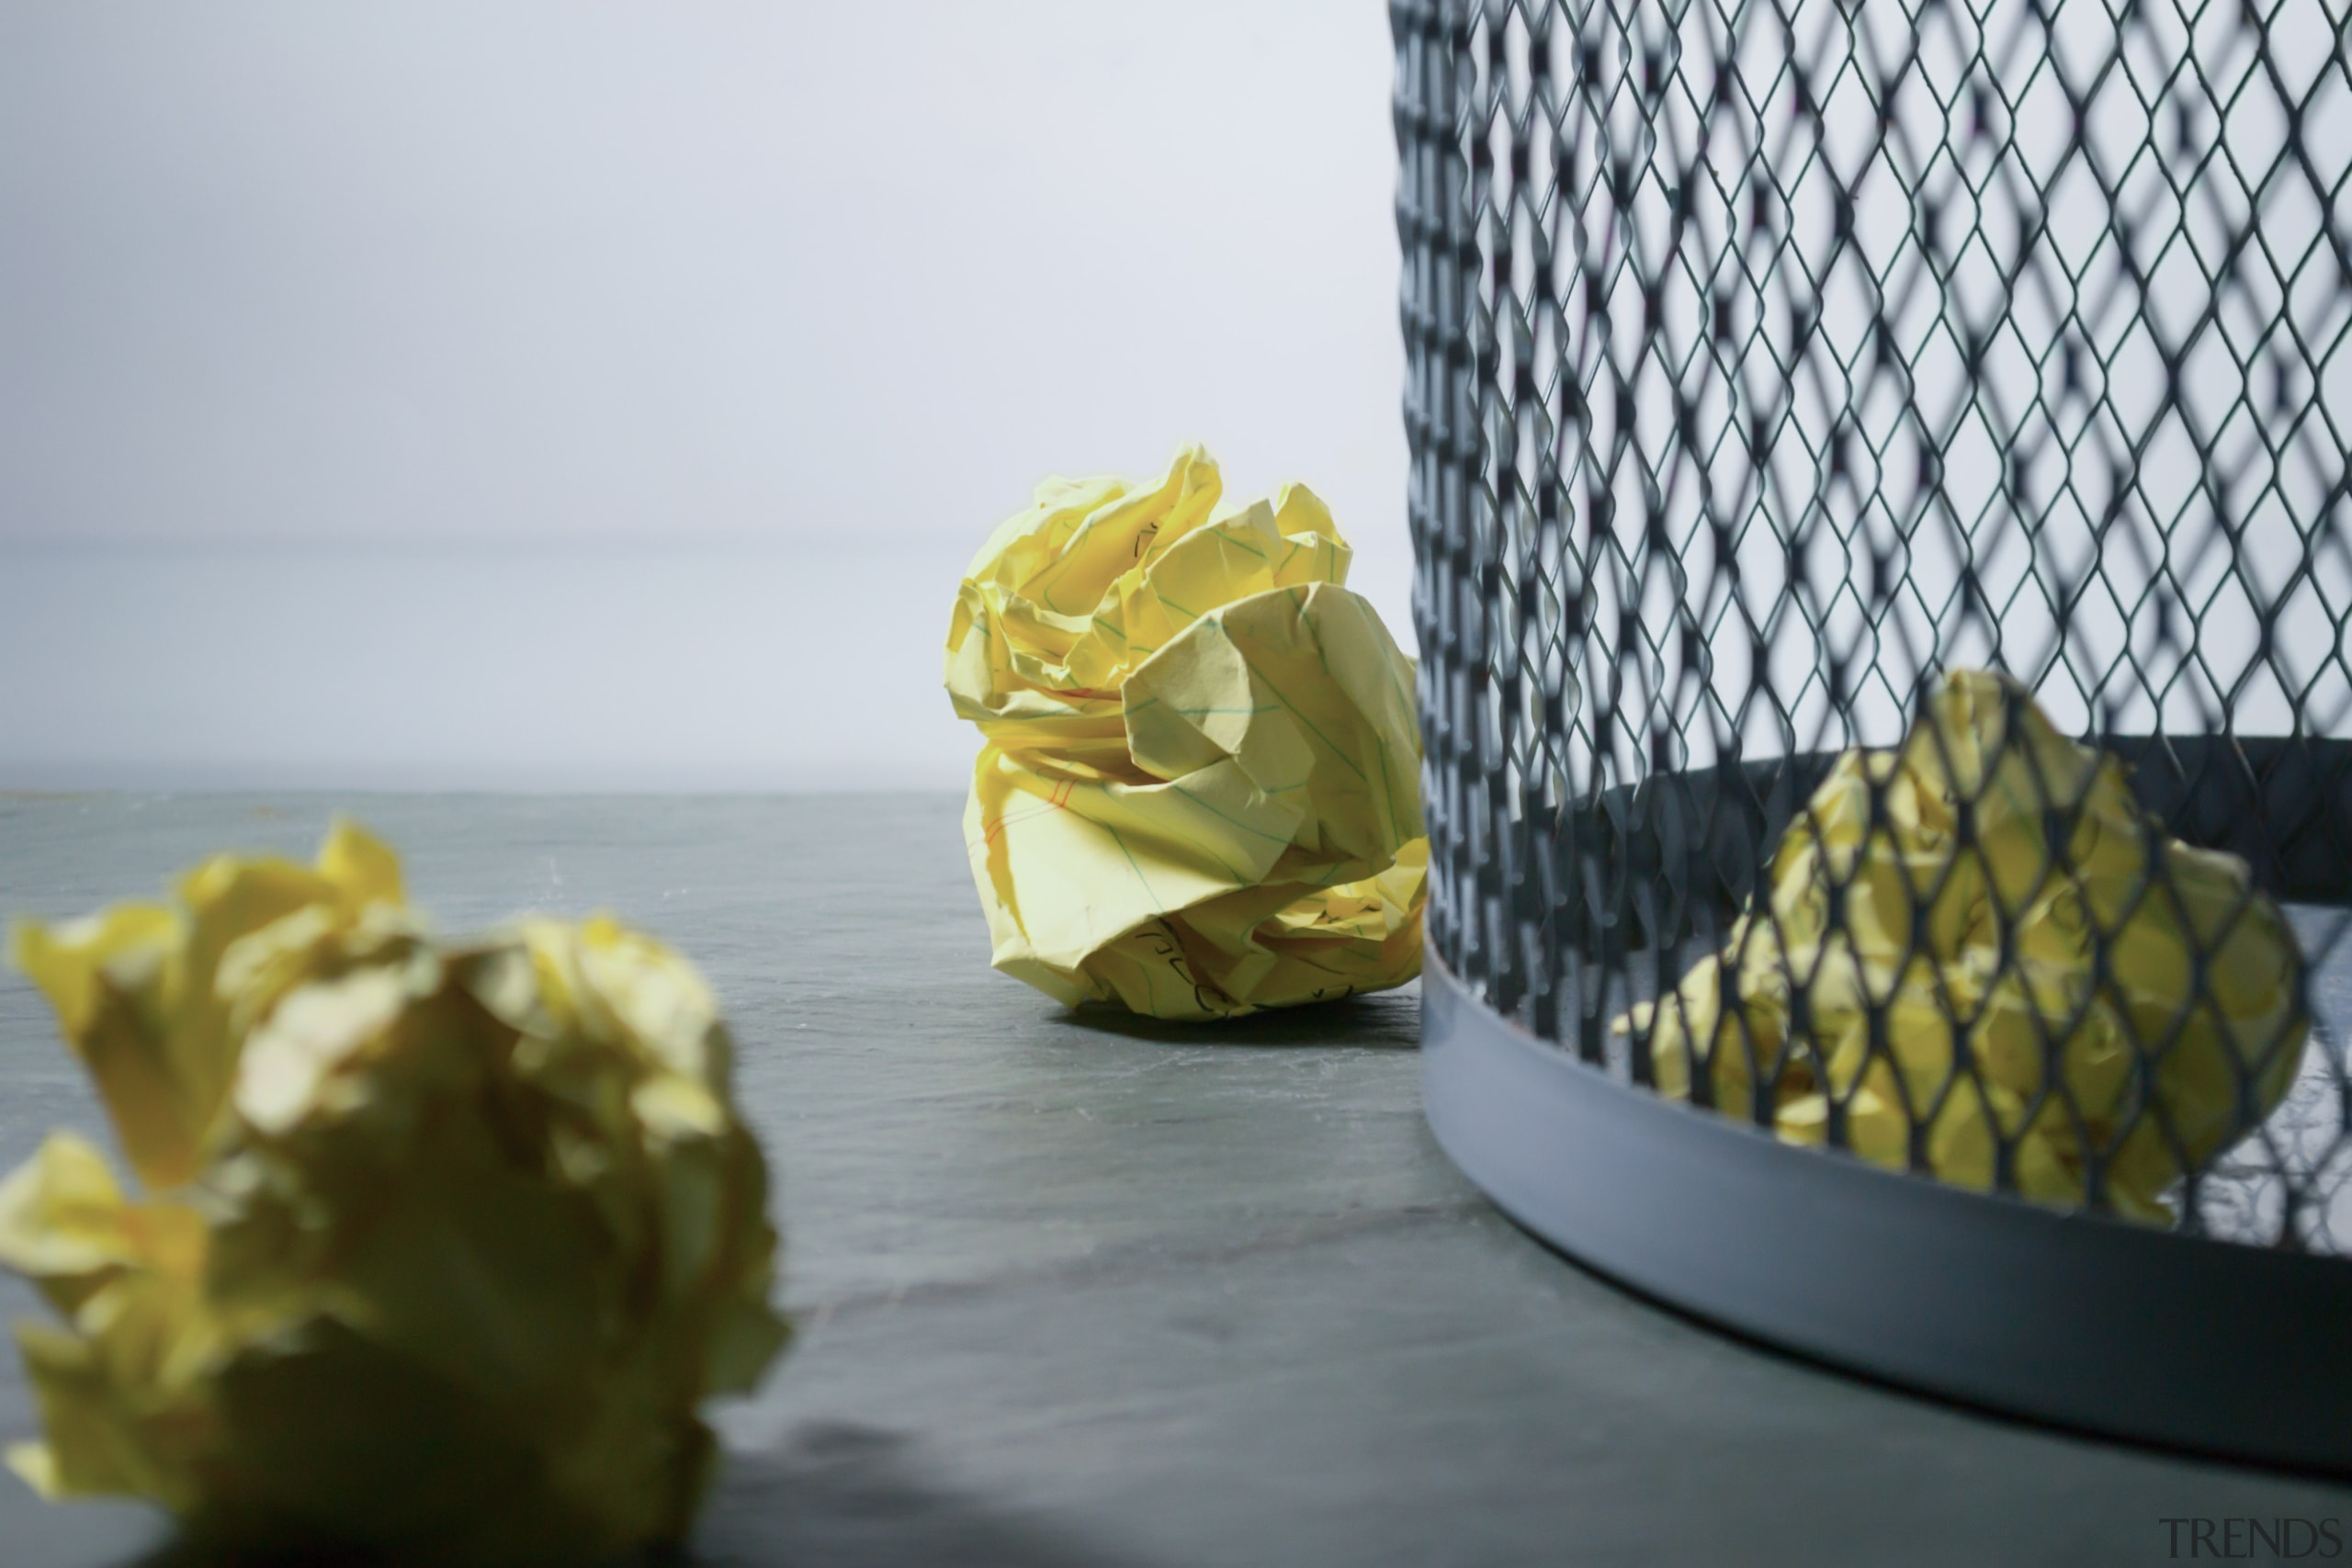 Have a small garbage or recycle can under ananas, plant, still life, still life photography, yellow, gray, white